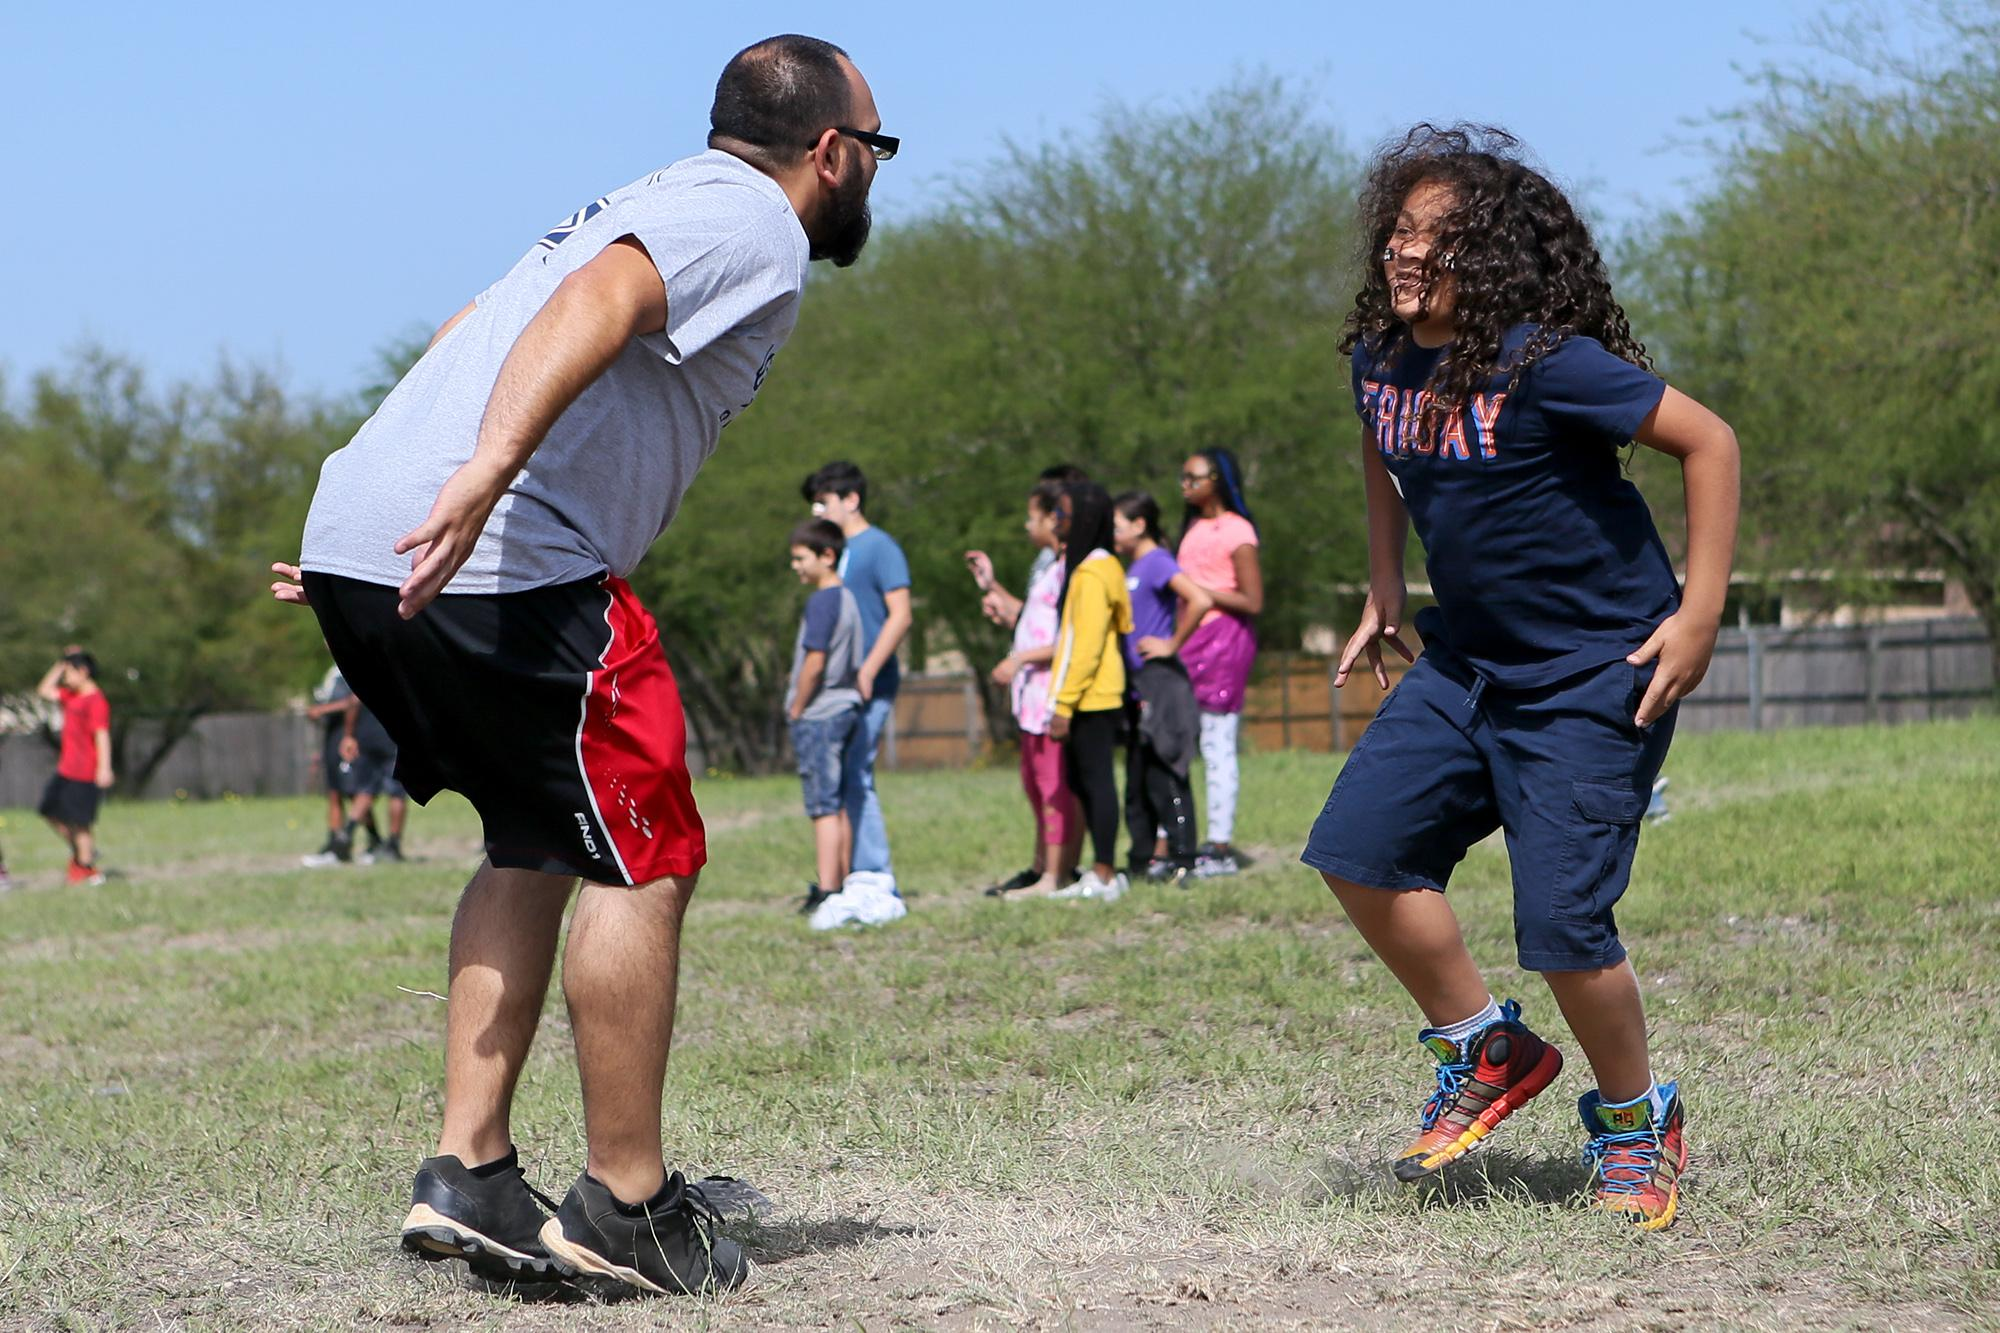 22dc8b99 Copperfield students 'fuel up' on fun - San Antonio Express-News